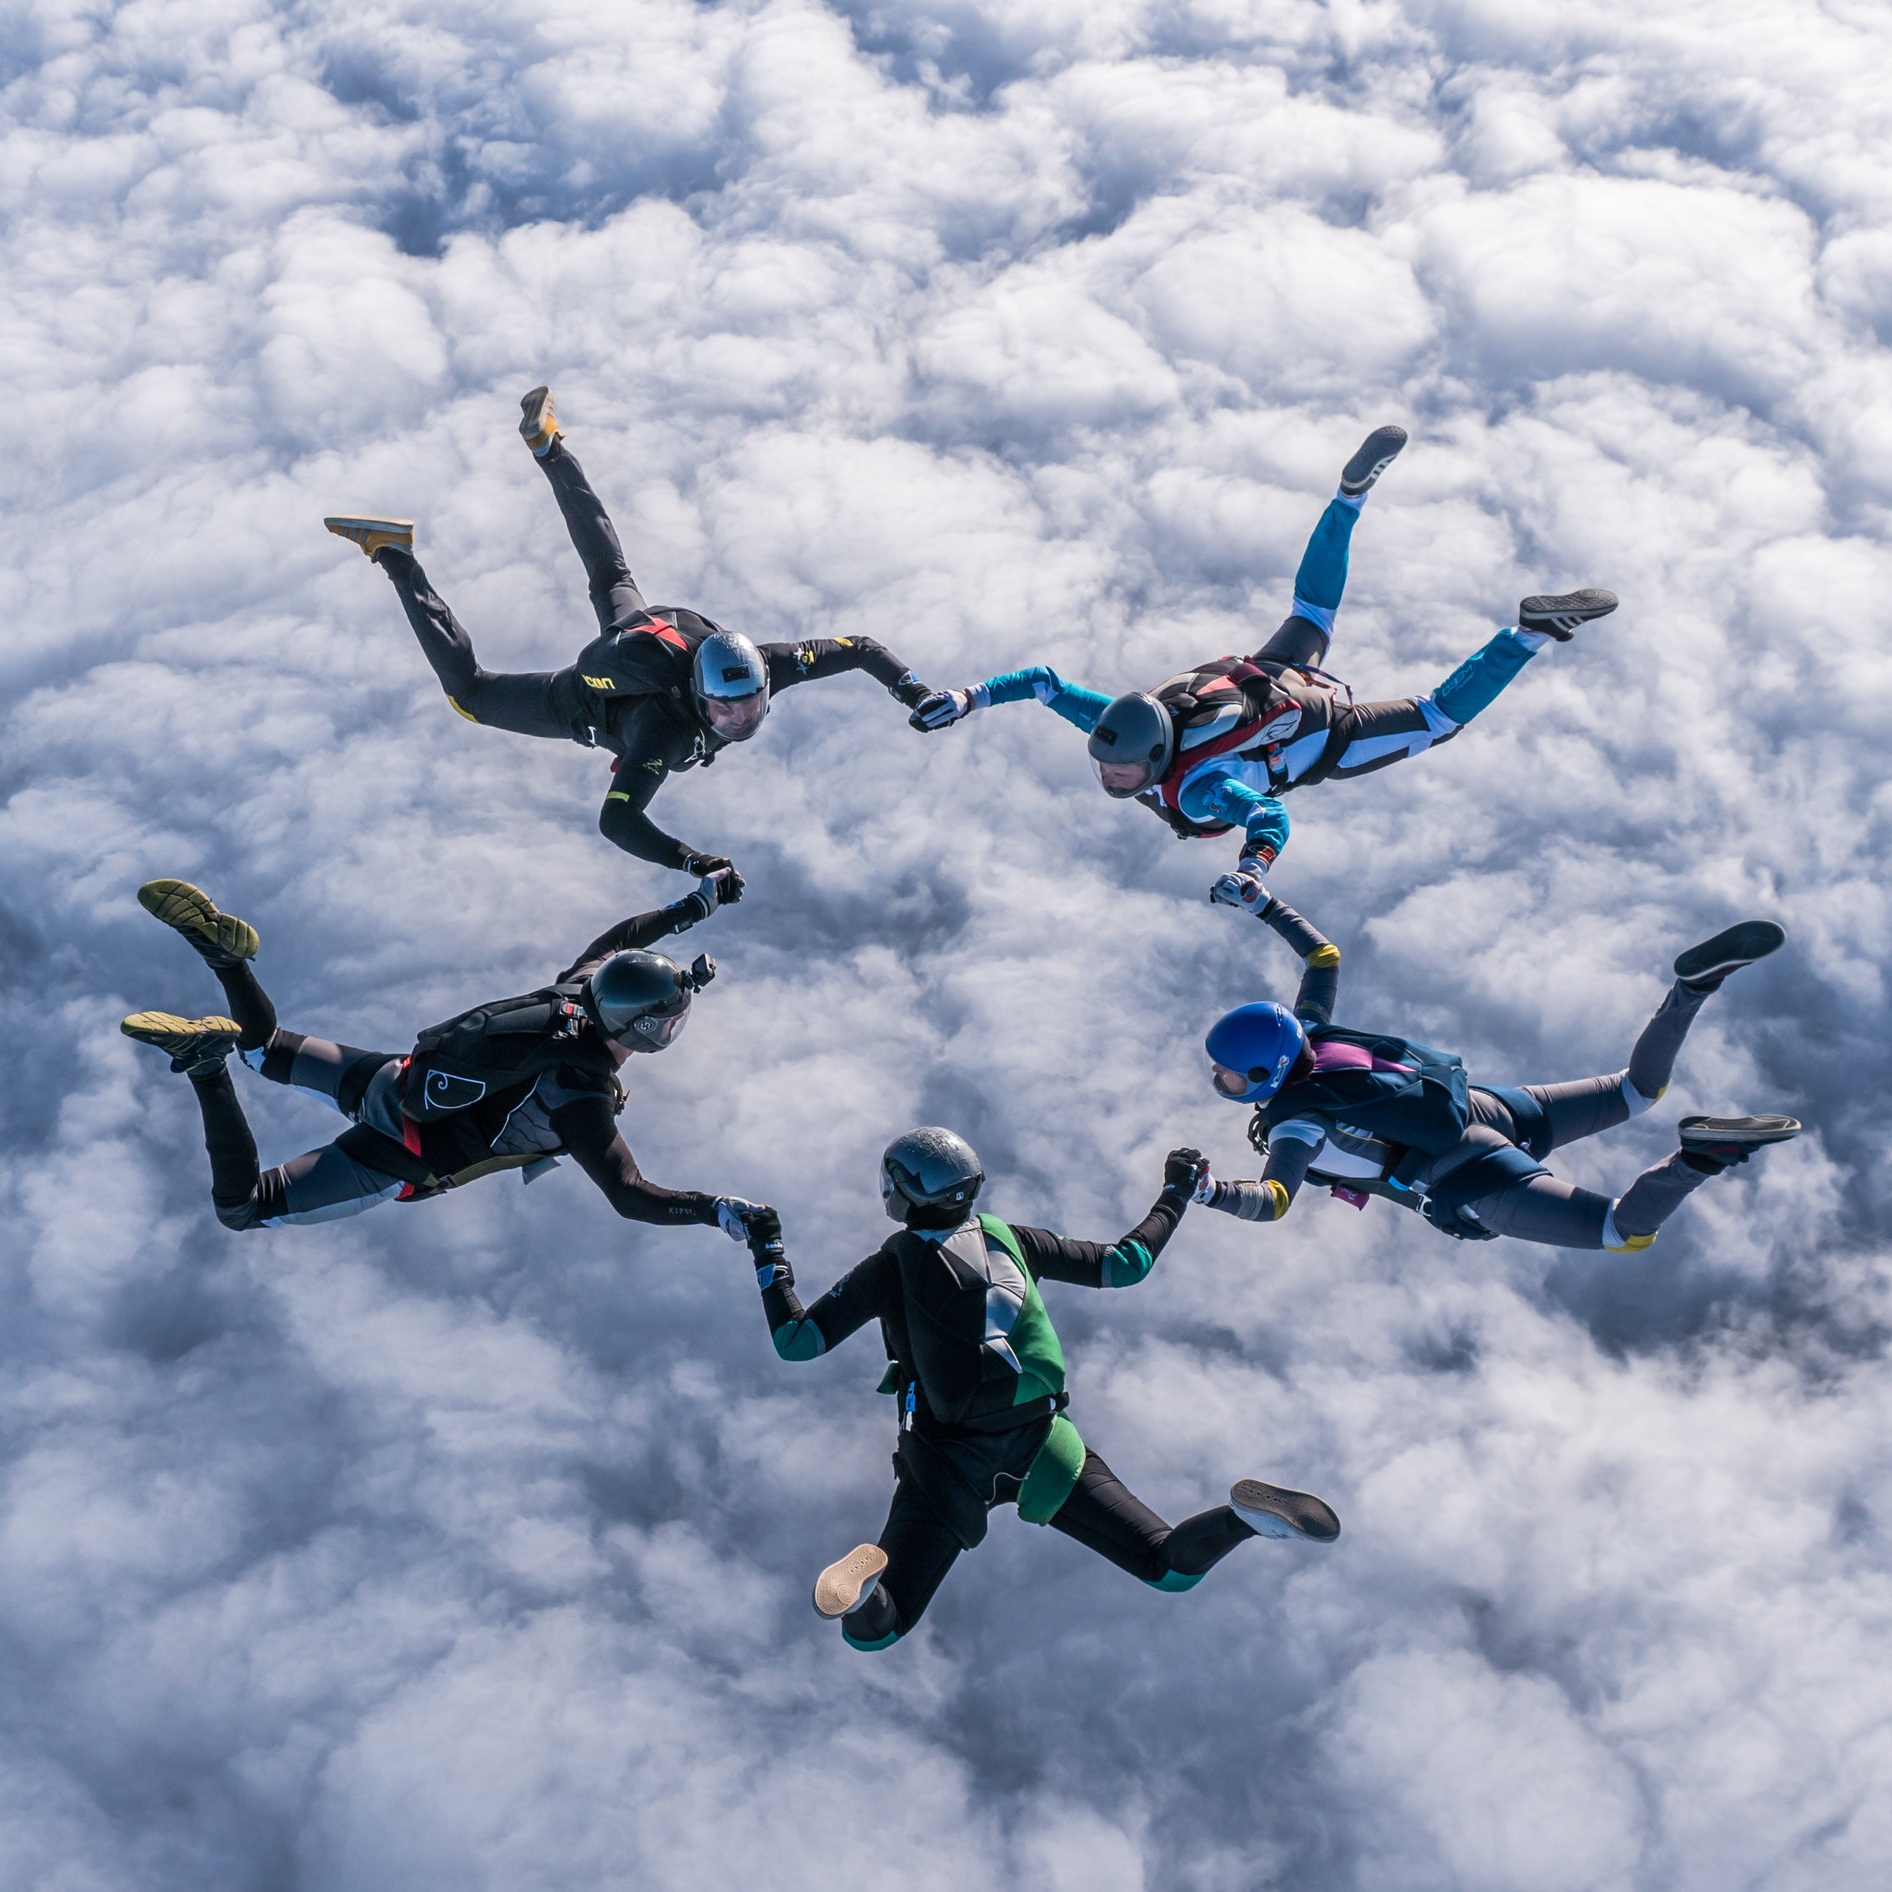 Air Responsibility - Four days of learning how to lead, instruct and take responsibility at the DZ.€1150 p.p in a group of fourRead more